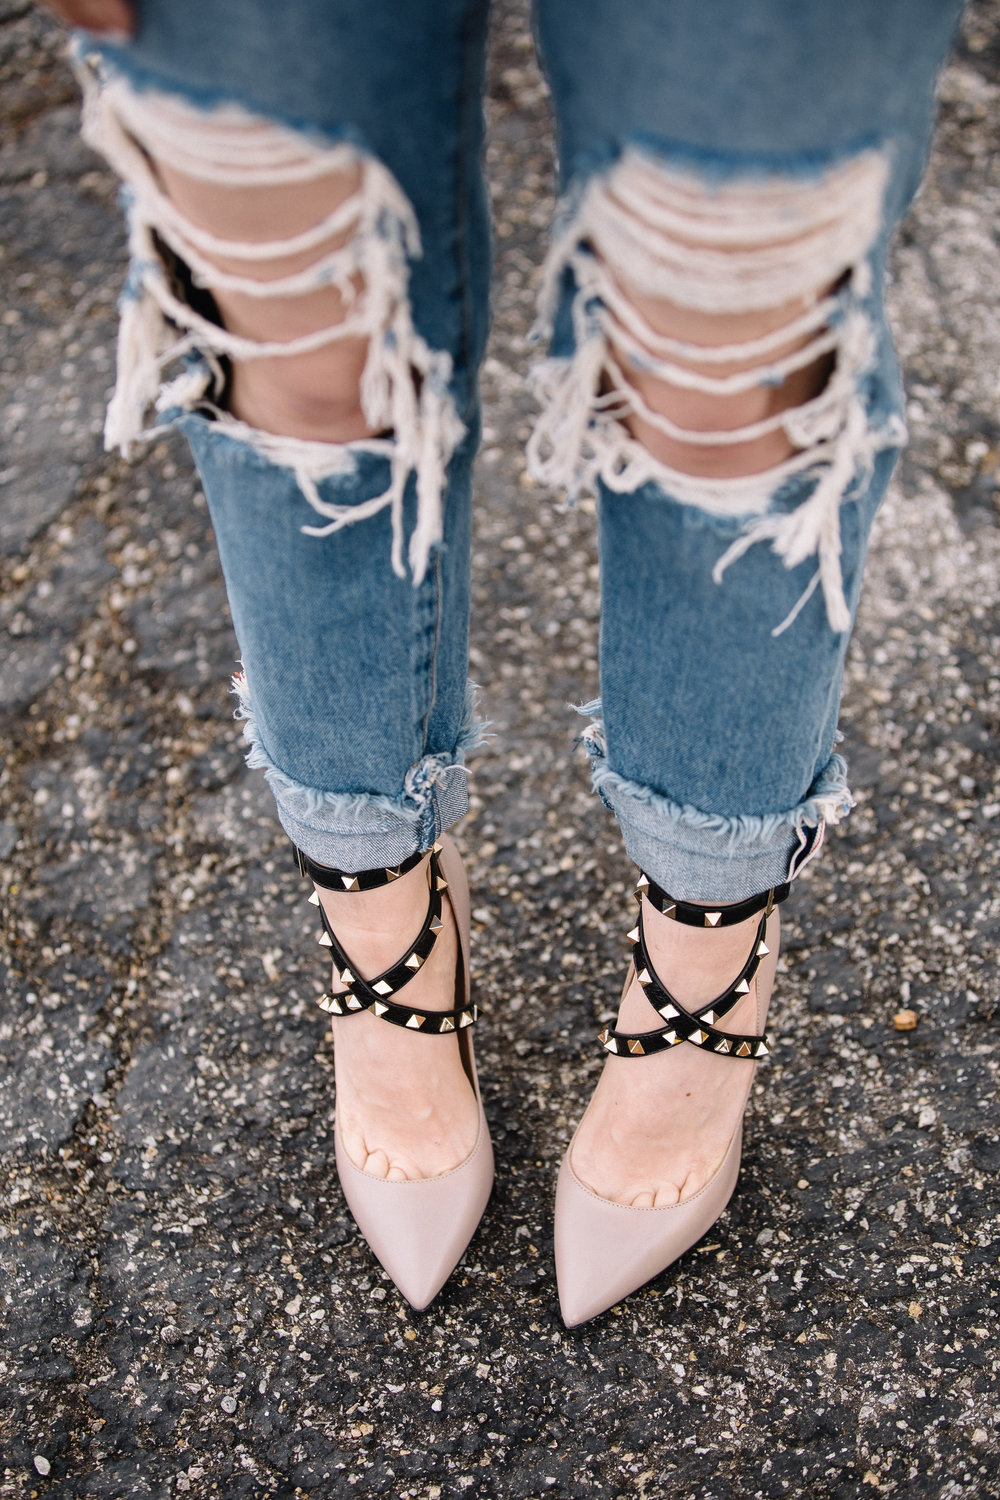 rock studs and ripped jeans.jpg